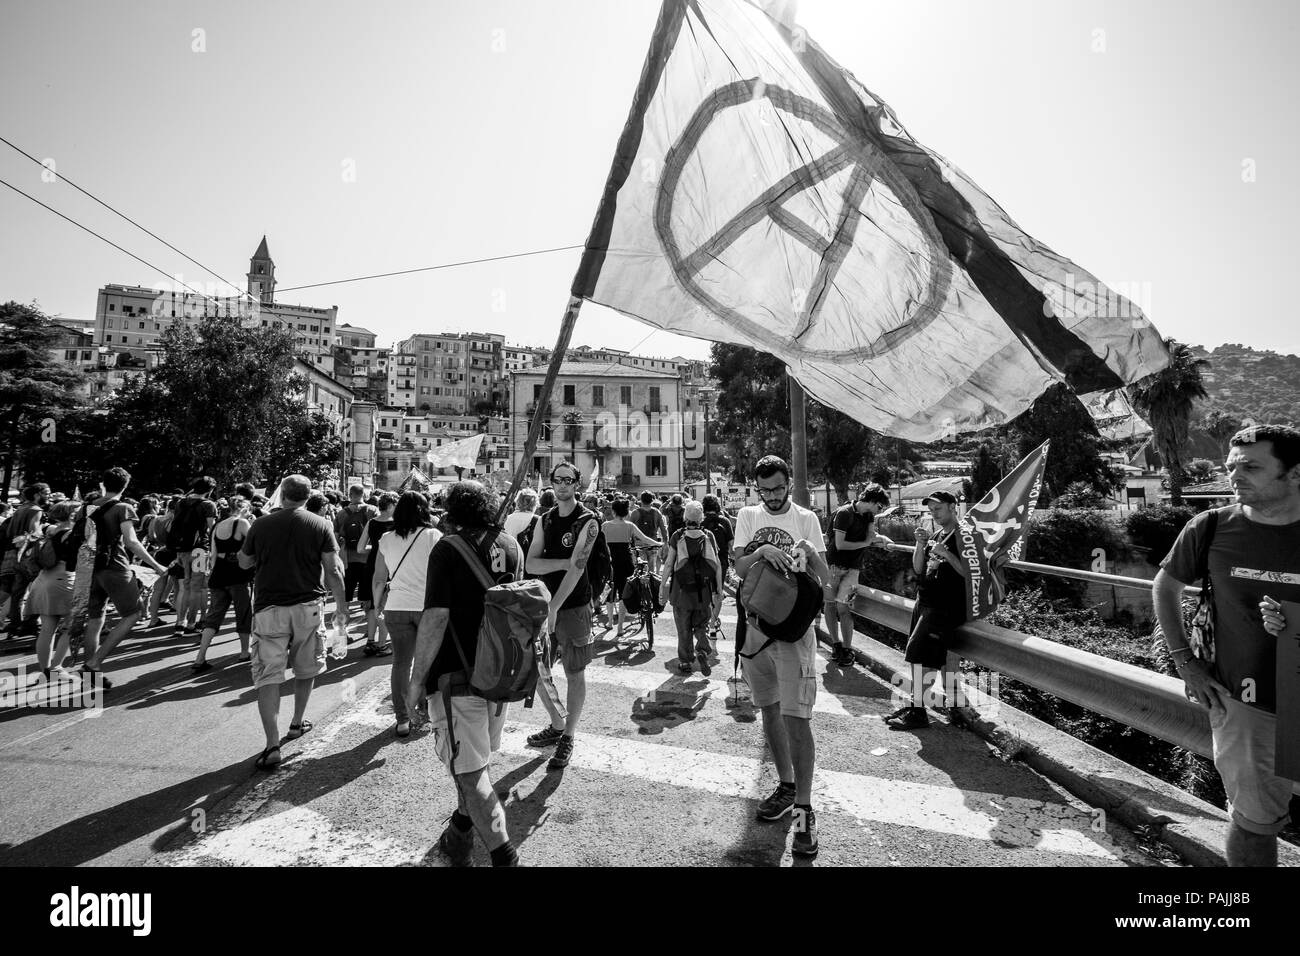 Ventimiglia, Italy, 14.07.2018: People who protest with anarchy flag during an anti-racist demonstration in Ventimiglia. - Stock Image